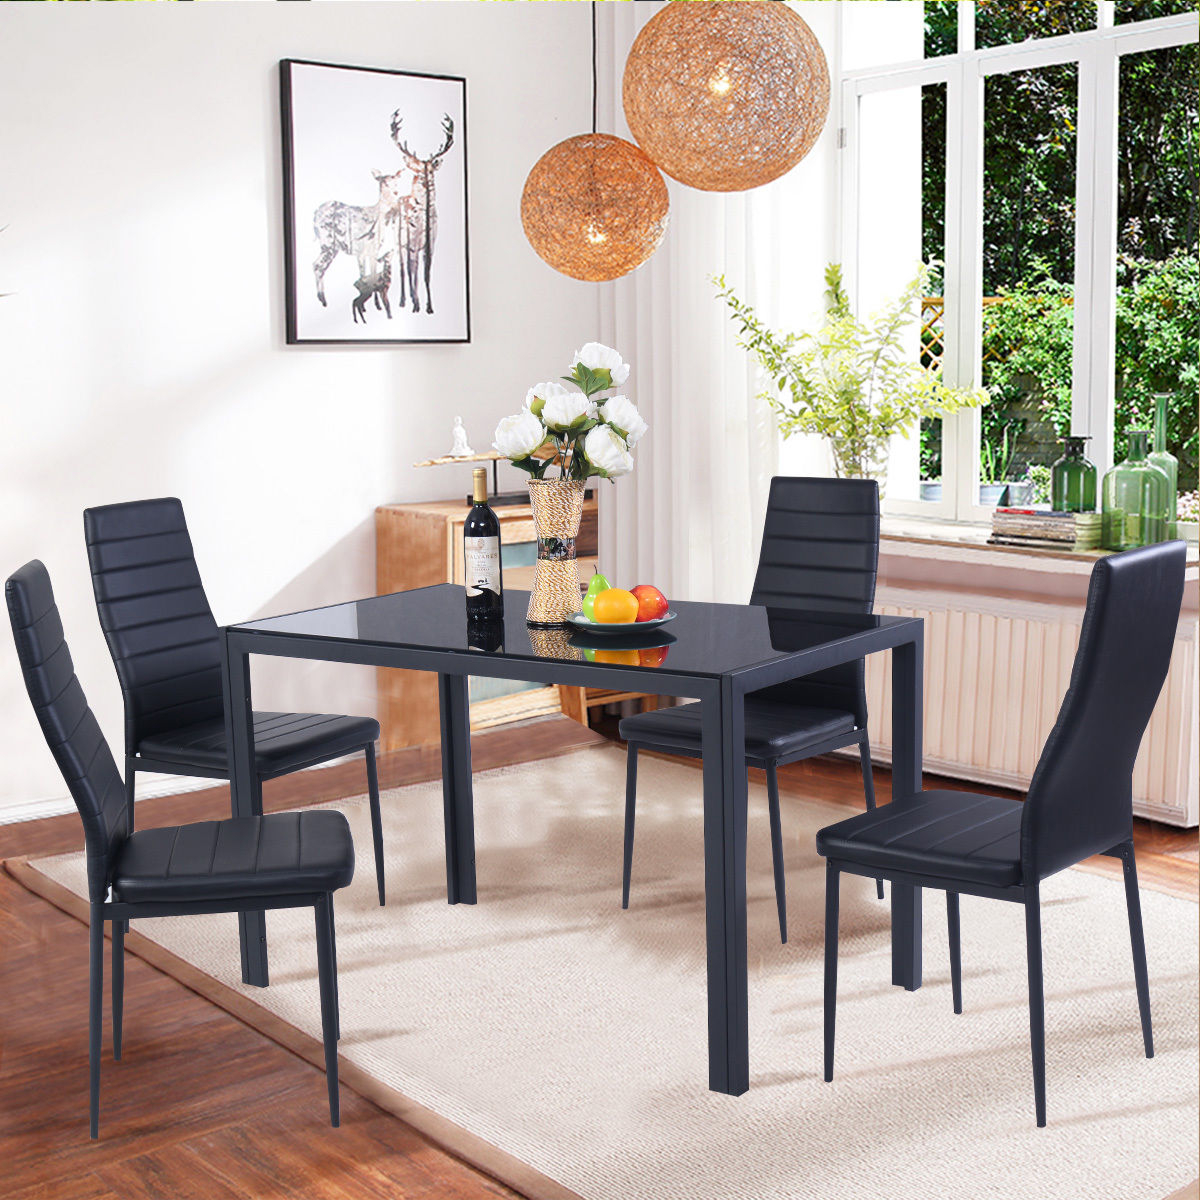 Costway 5 Piece Kitchen Dining Set Glass Metal Table And 4 Chairs throughout Living Room Set For Cheap